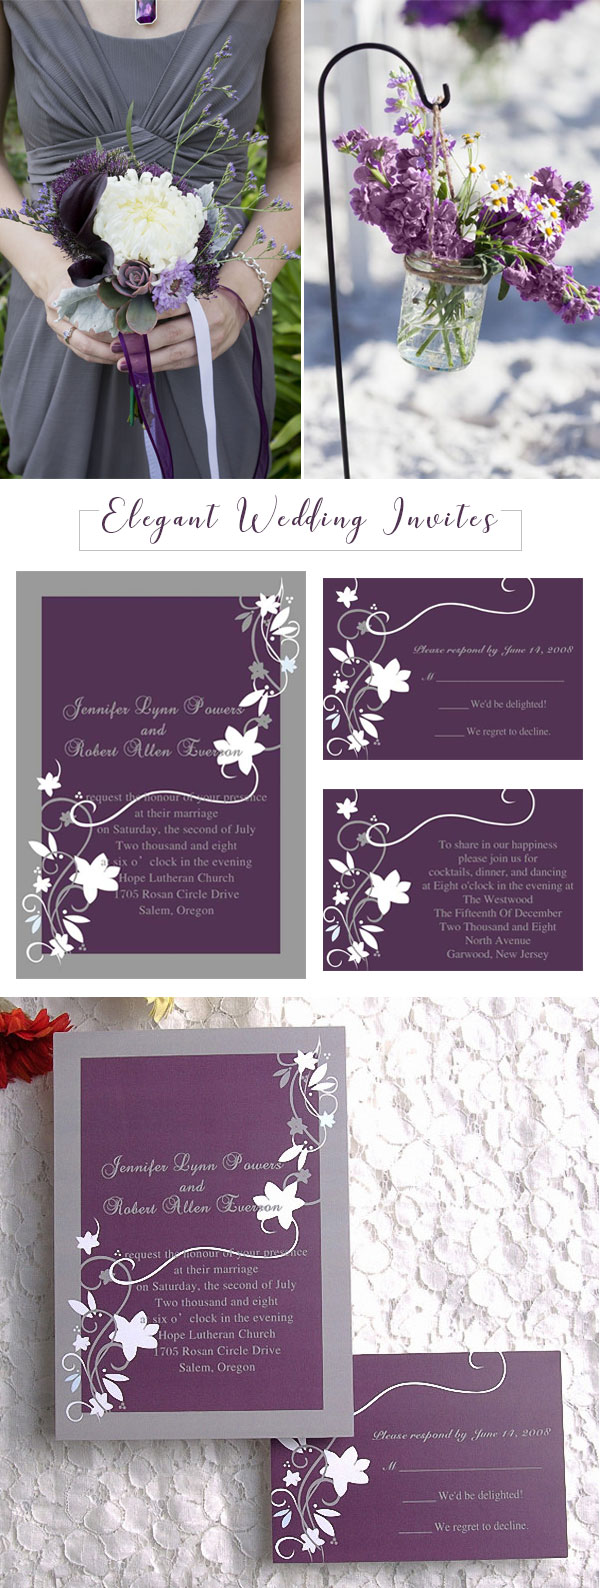 Rustic Floral Plum and Grey Wedding Invitations EWI001